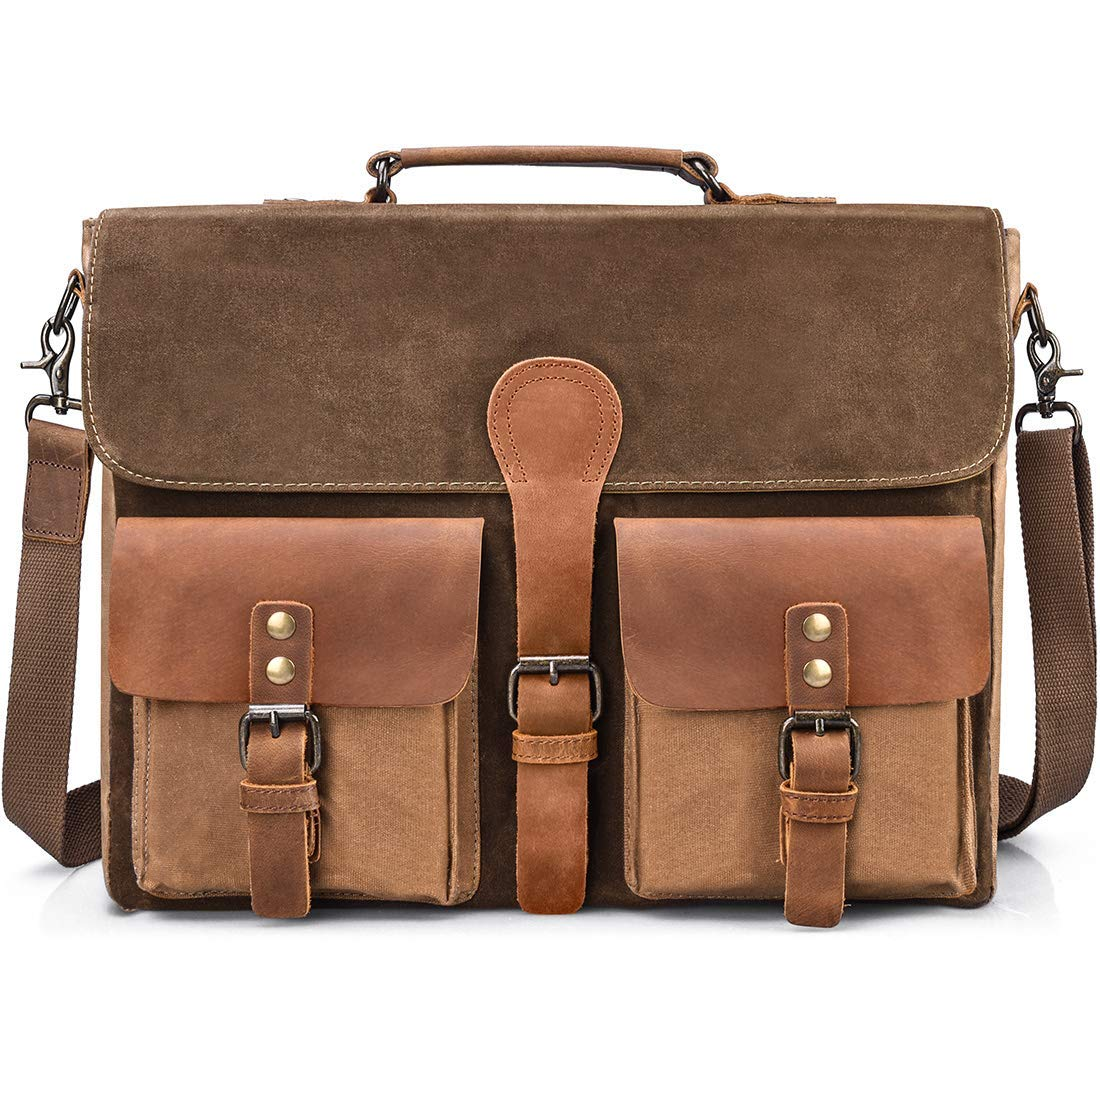 f081548e97 Get Quotations · Mens Messenger Bag Vintage Genuine Leather Large Laptop  Briefcase 15.6 Inch Waterproof Waxed Canvas Satchel Shoulder